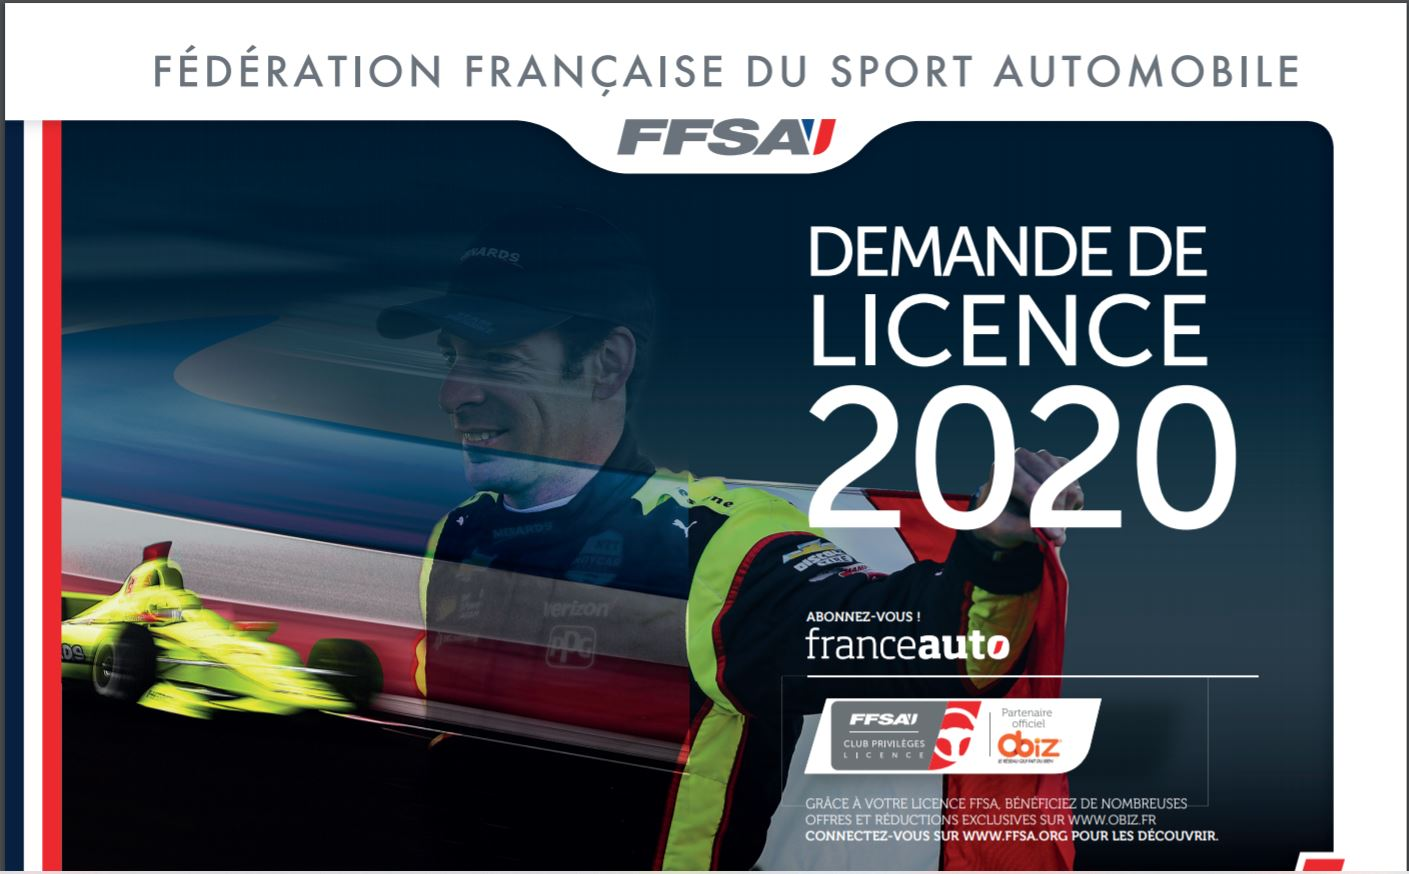 2020 licence